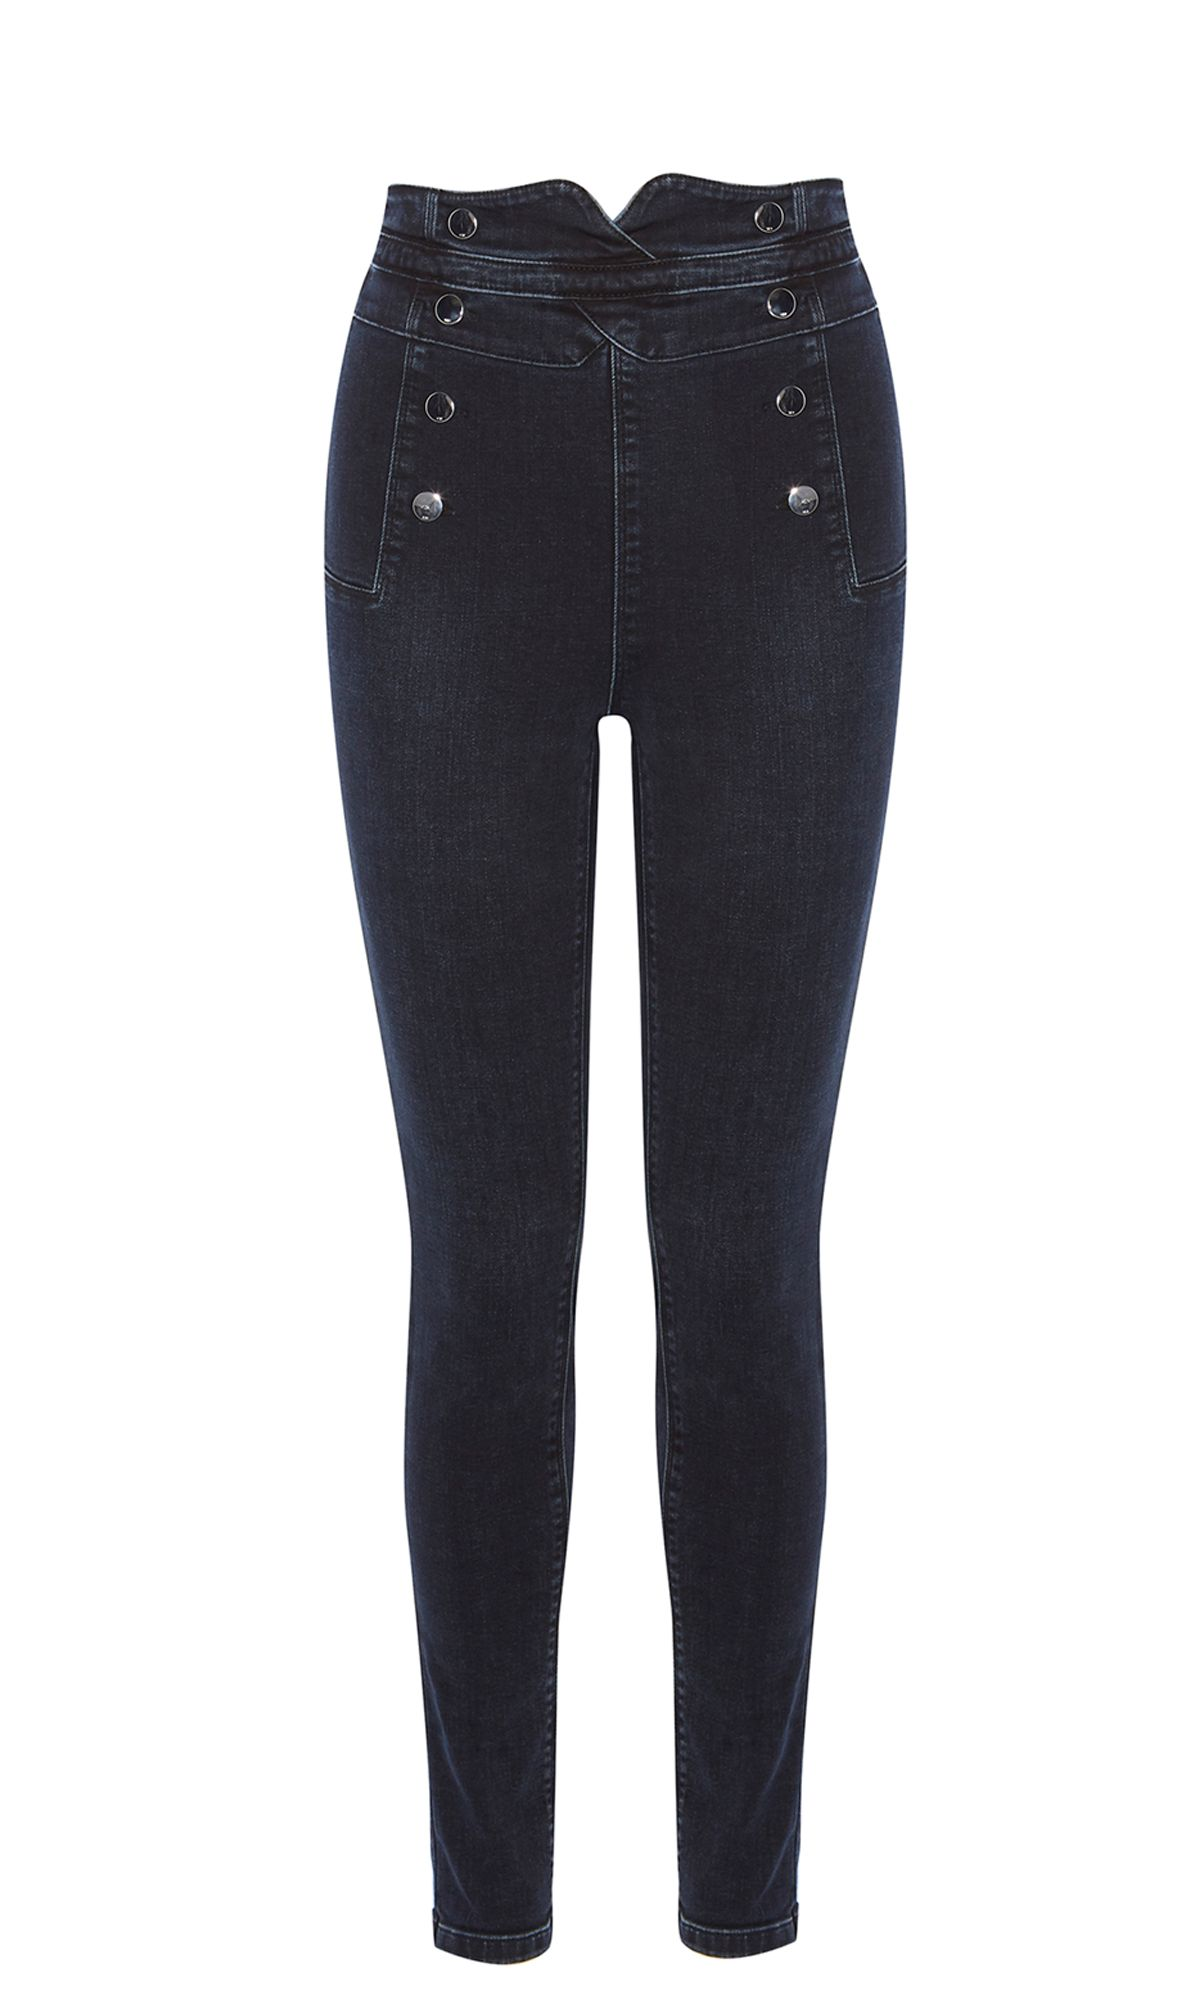 Karen Millen High-Waisted Skinny Jeans, Denim Indigo